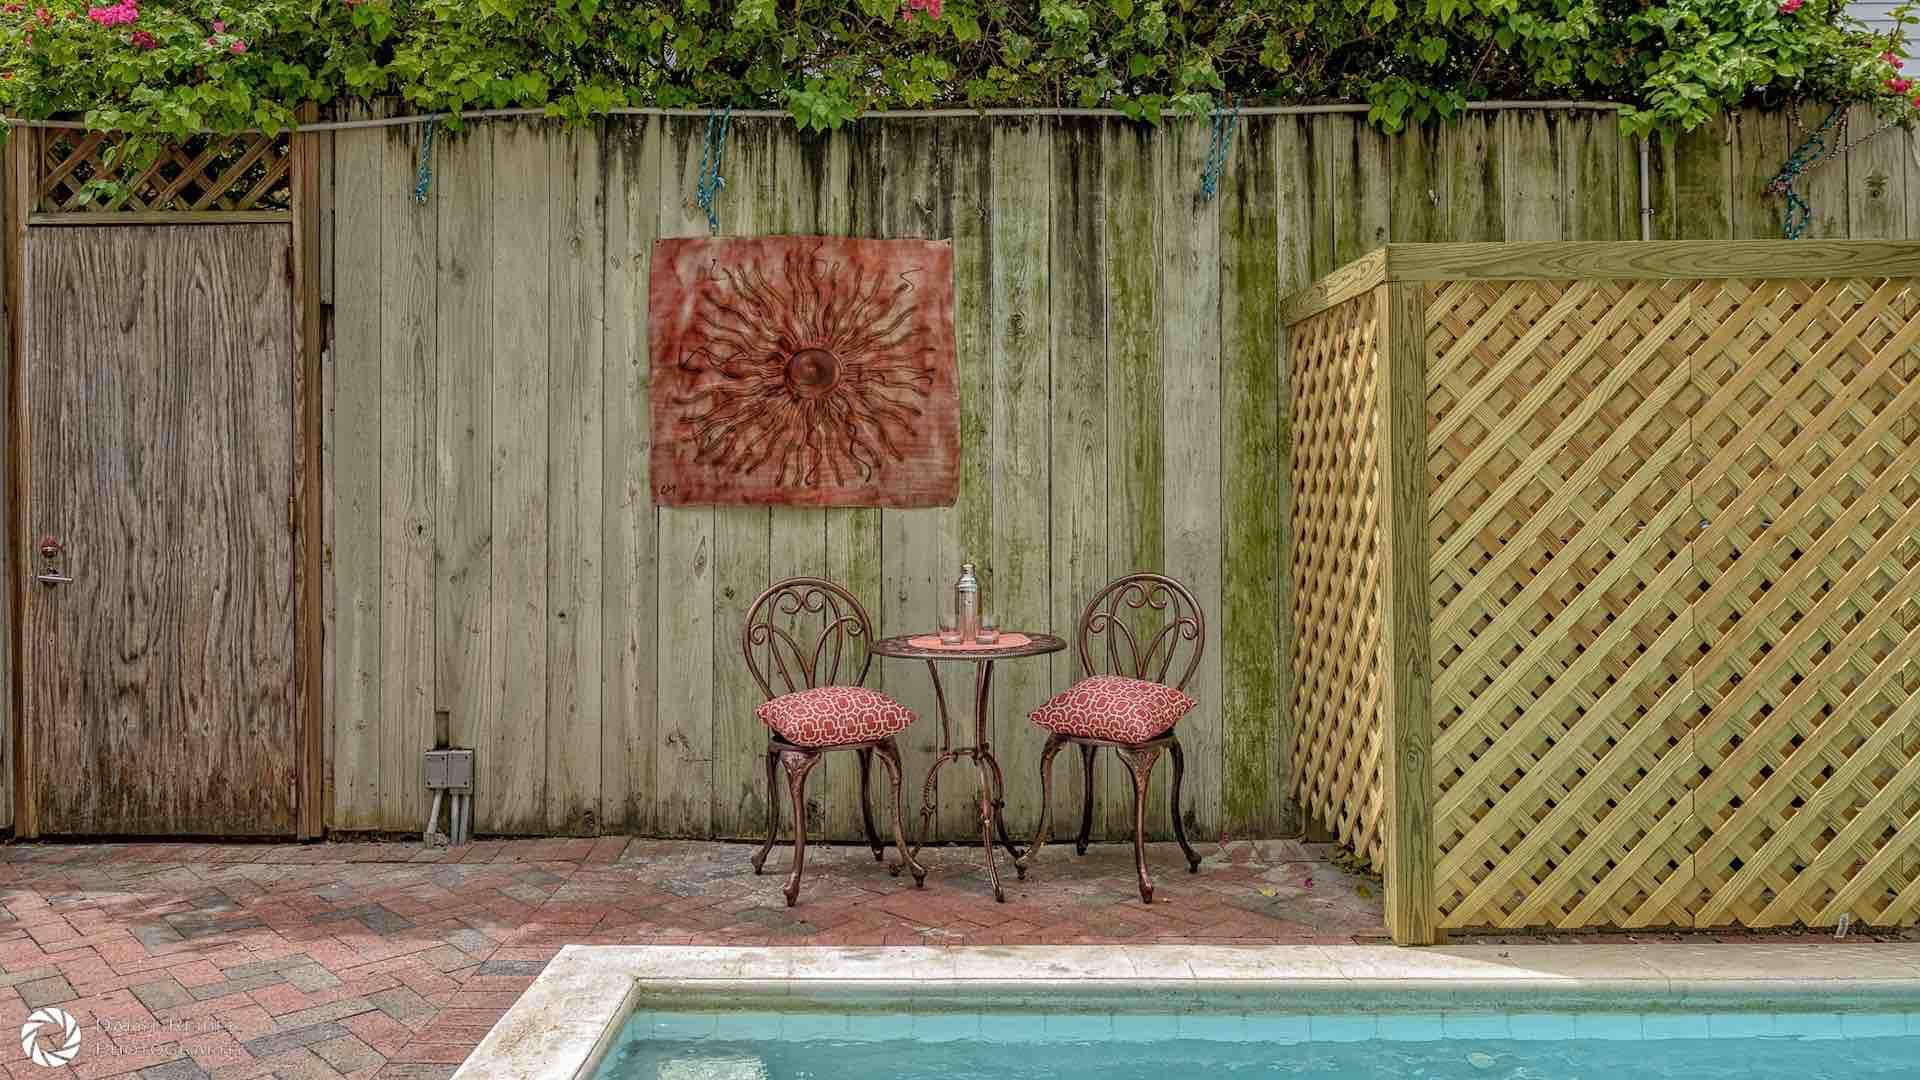 Pleasant outdoor artwork decorates the fence surrounding the pool area...